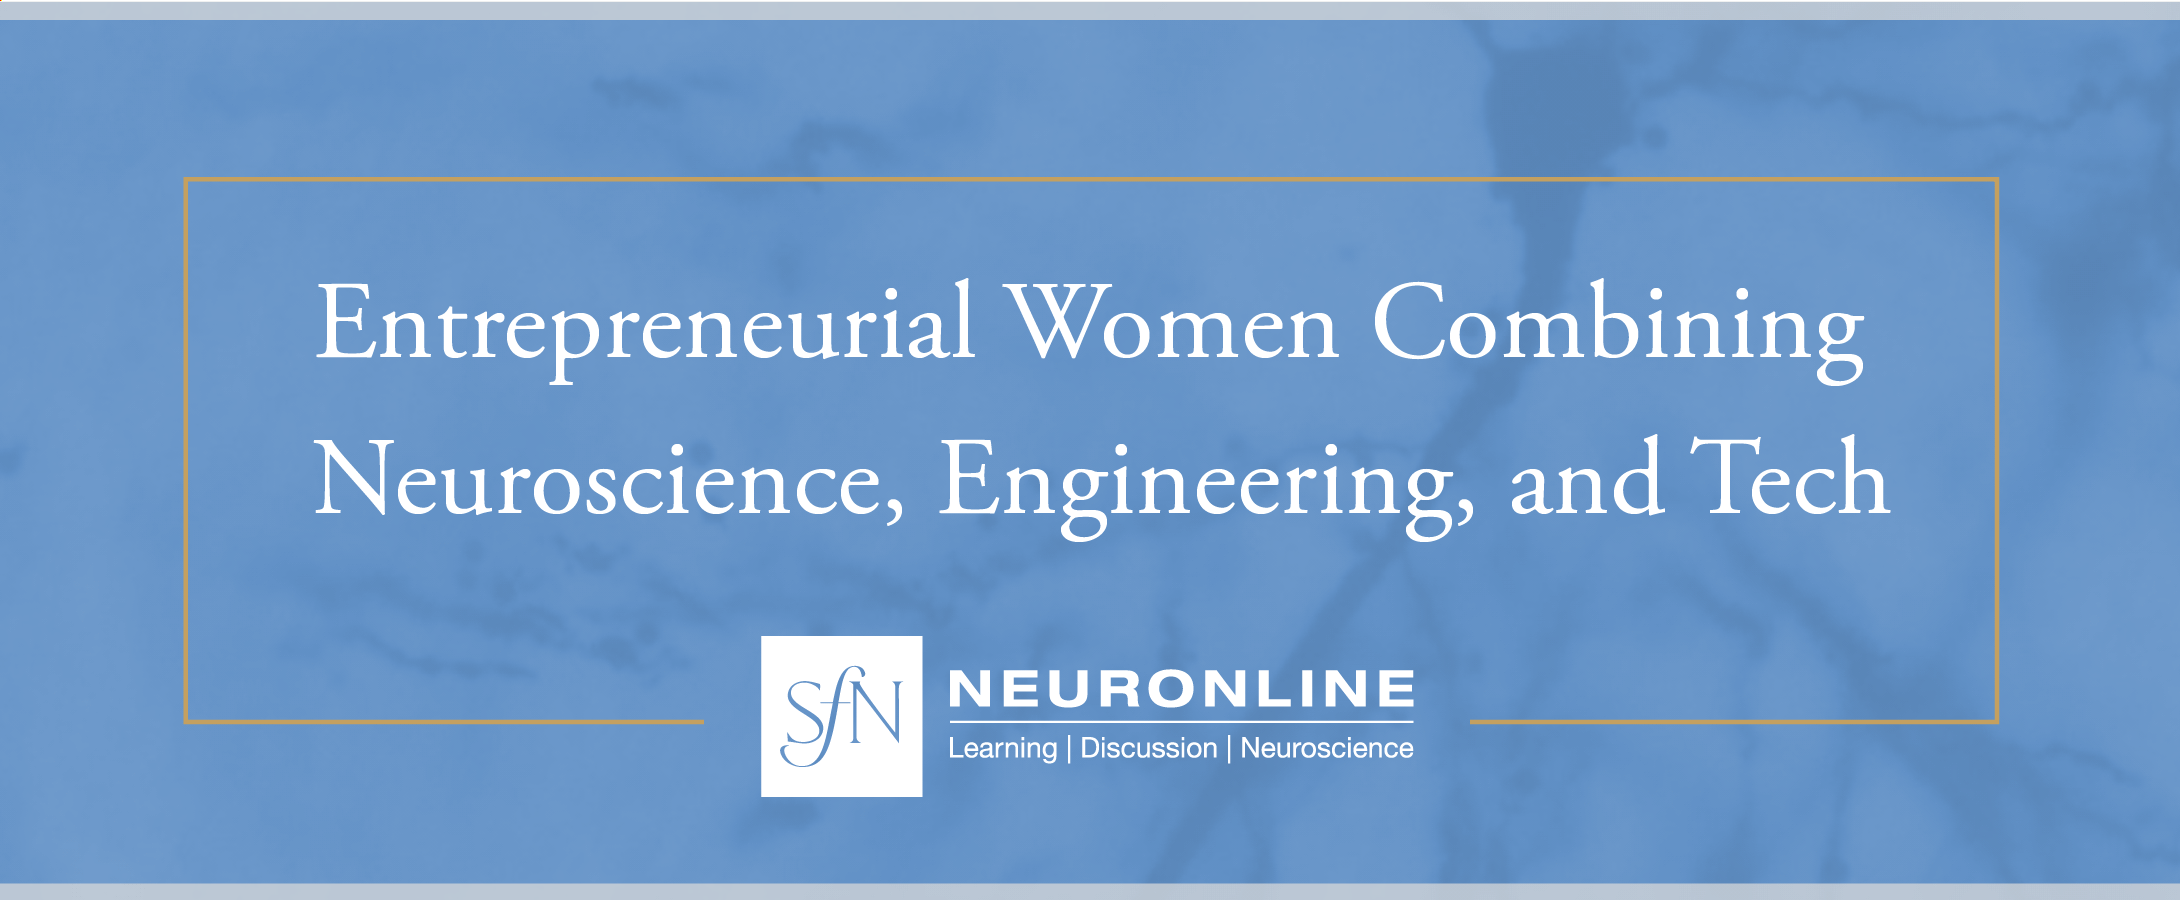 """Title card stating """"Entrepreneurial Women Combining Neuroscience, Engineering, and Technology"""" in white text on a blue background, with the Neuronline logo below."""